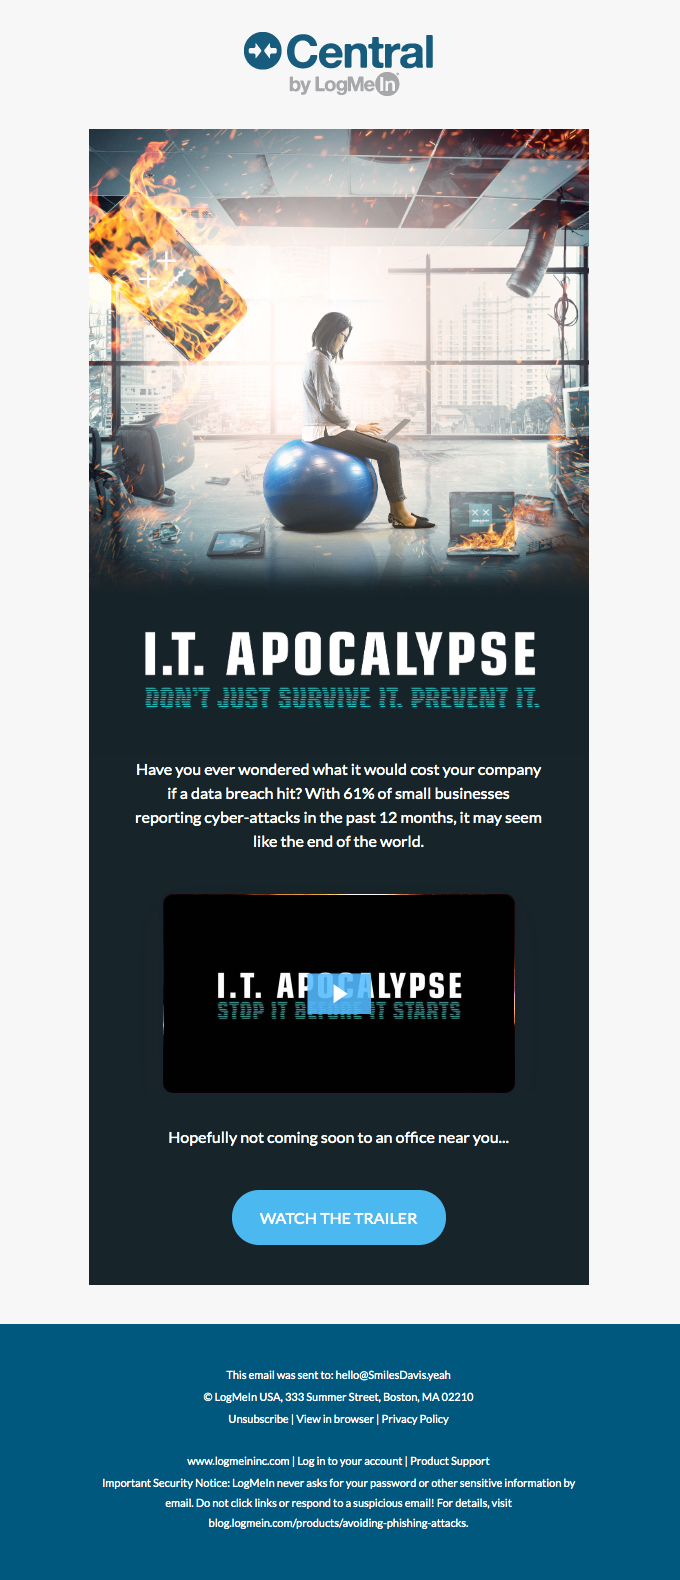 IT Apocalypse: Don't Just Survive. Prevent it.